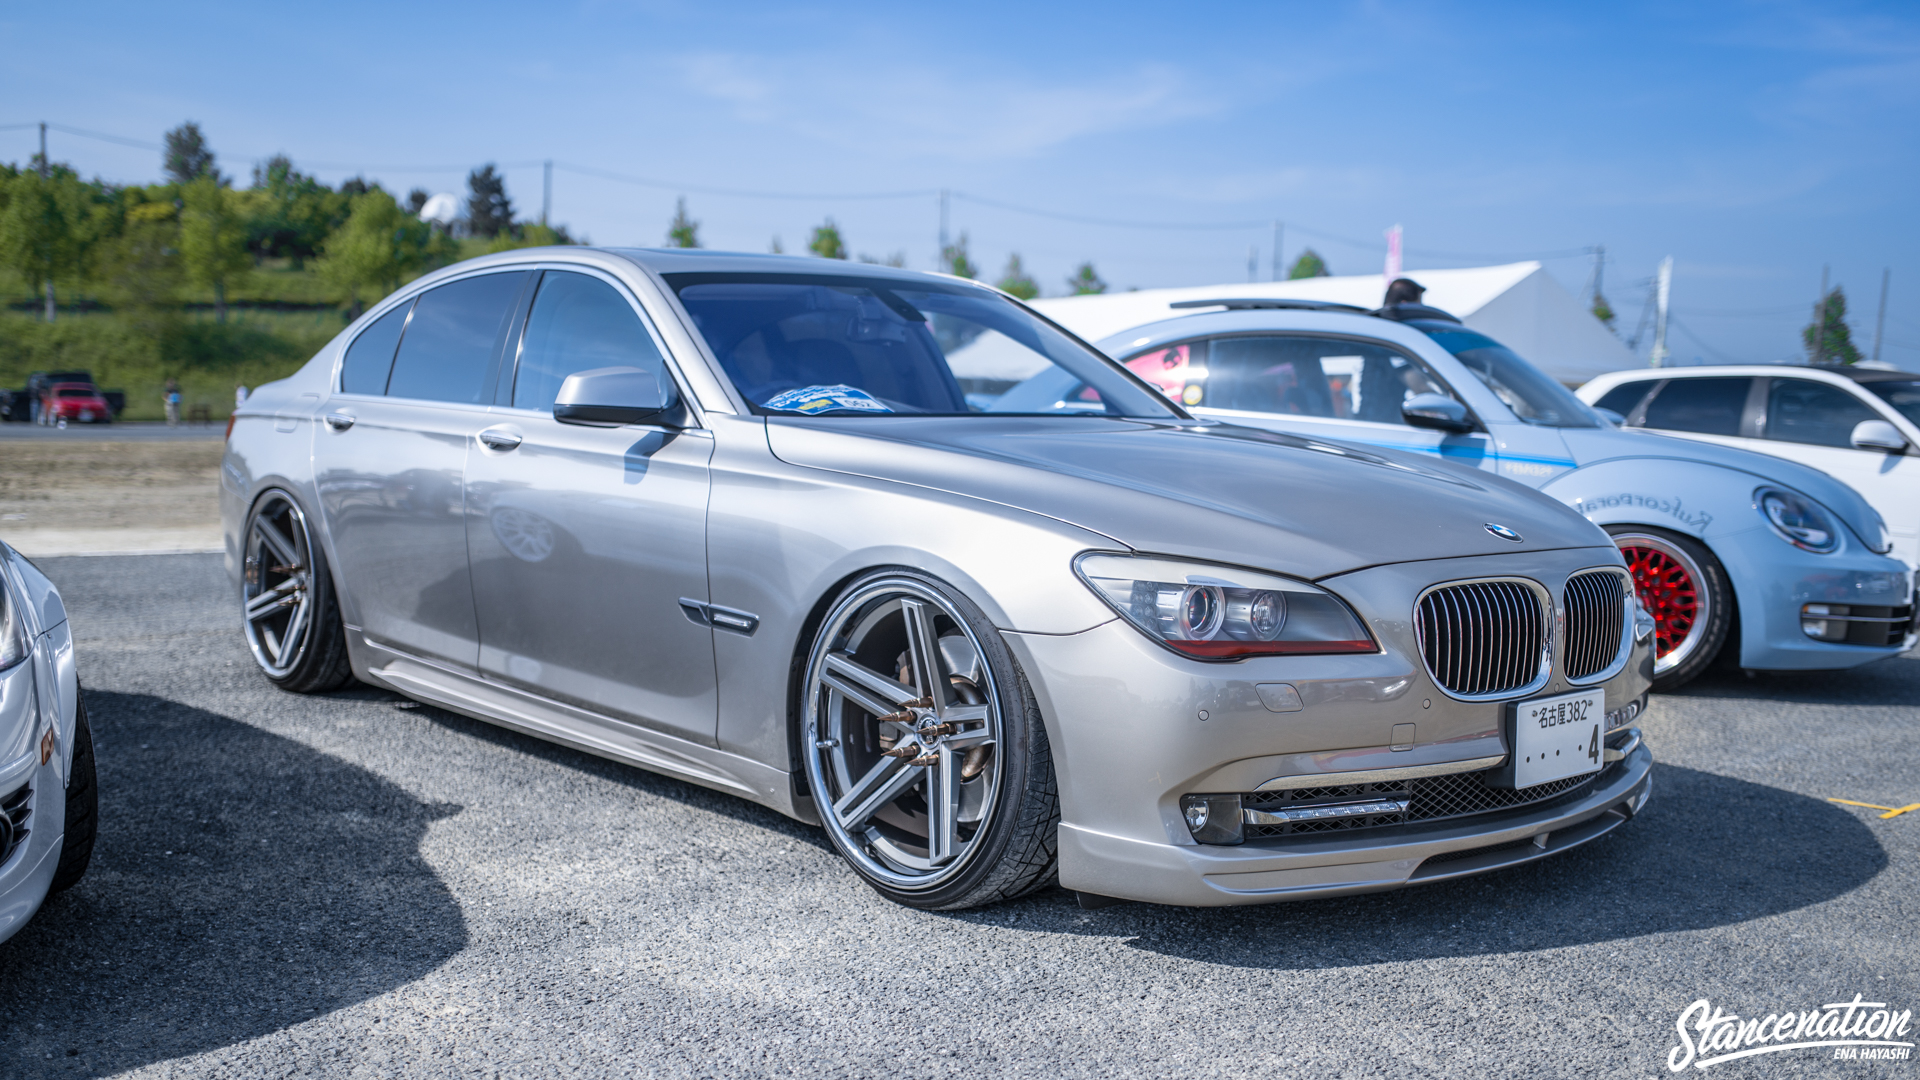 Much better don't you think? Photo: stancenation